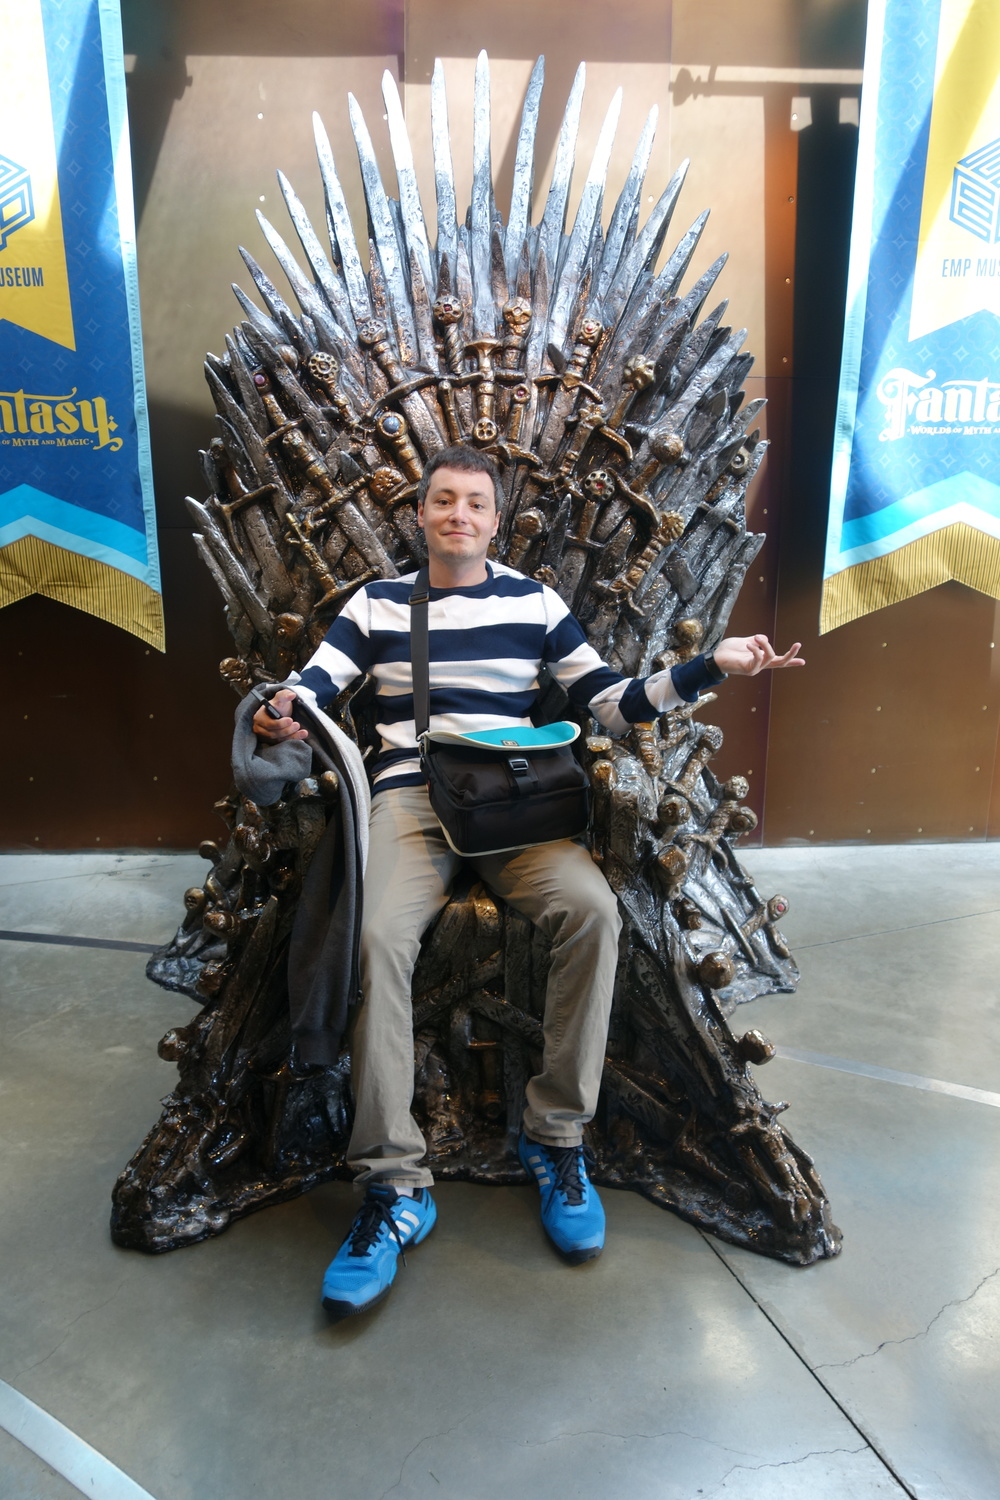 DSC00879 Me on the Throne.JPG